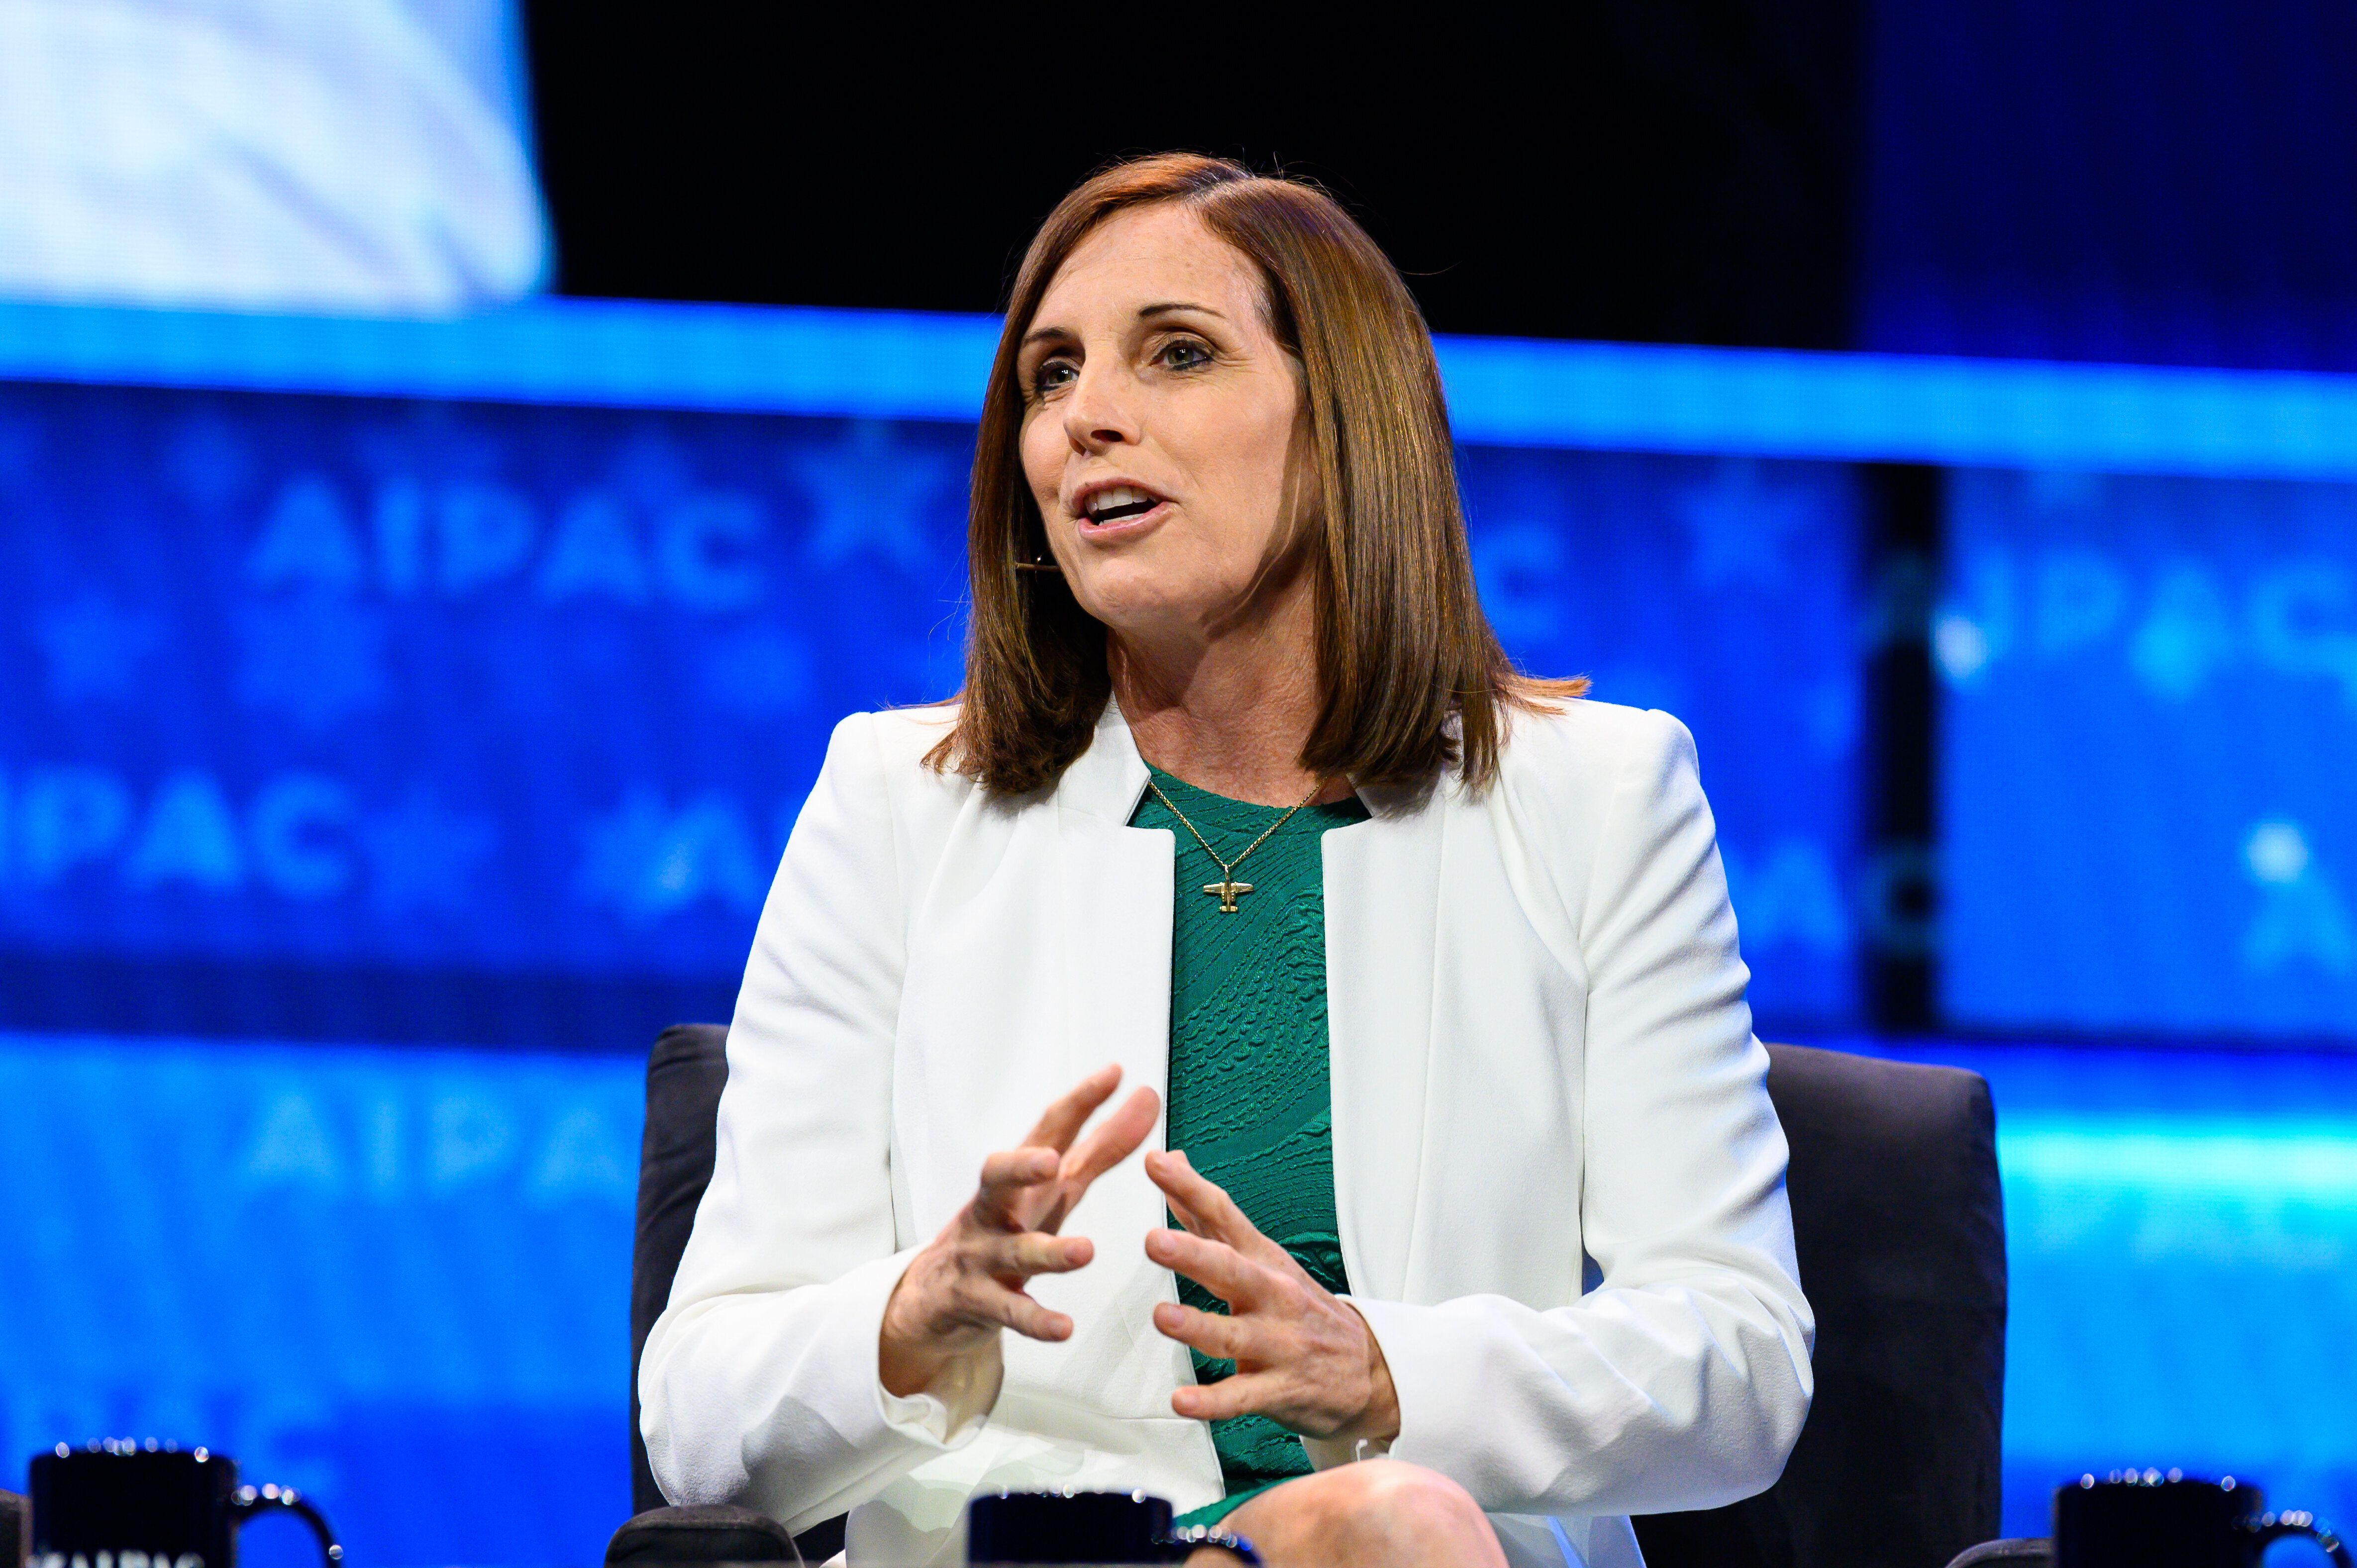 WASHINGTON, DC, UNITED STATES - 2019/03/25: U.S. Senator Martha McSally (R-AZ) seen speaking during the American Israel Public Affairs Committee (AIPAC) Policy Conference in Washington, DC. (Photo by Michael Brochstein/SOPA Images/LightRocket via Getty Images)